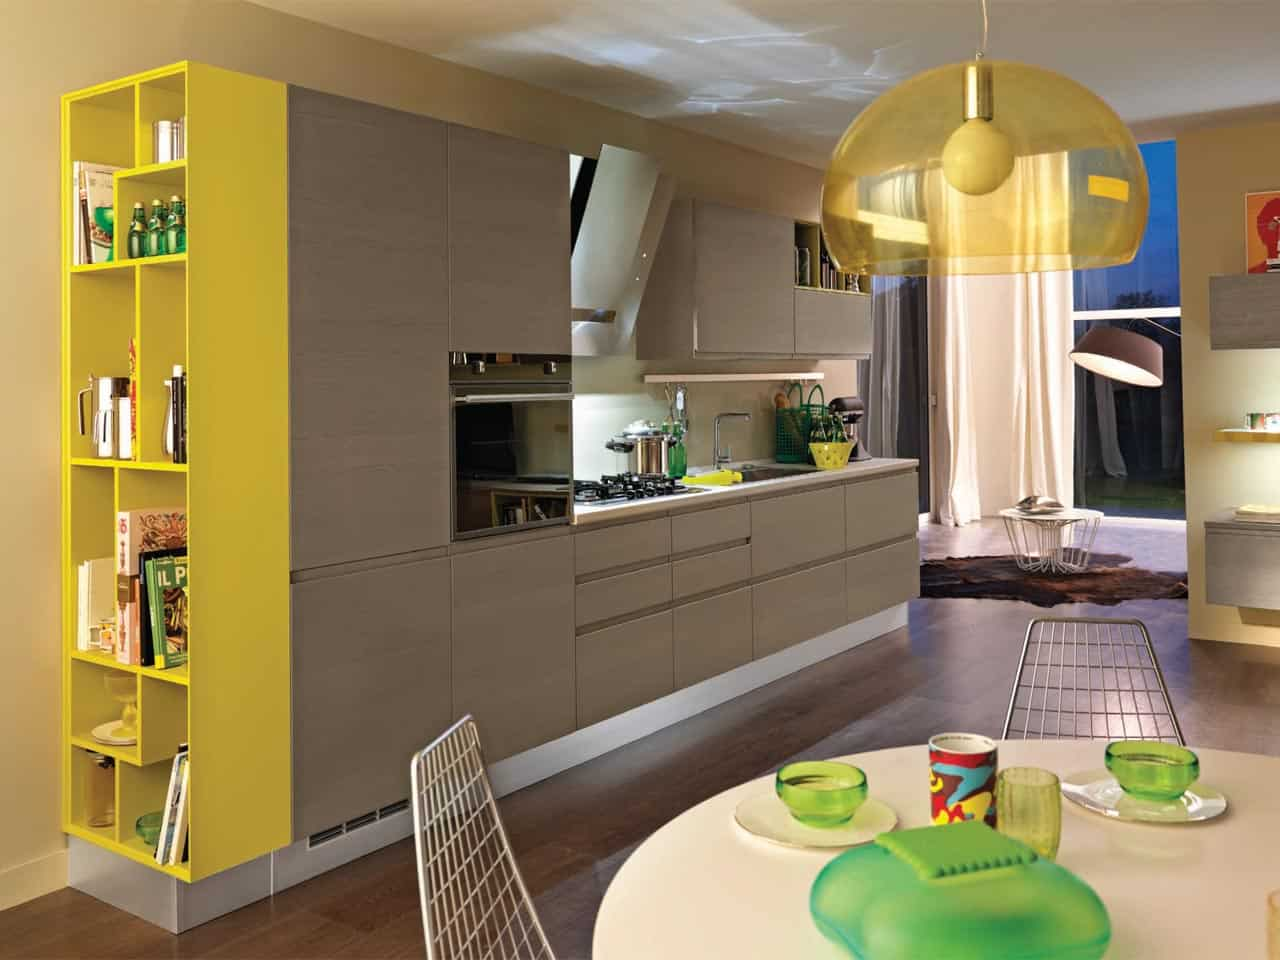 Best Cucine Economiche Torino Photos - Ideas & Design 2017 ...